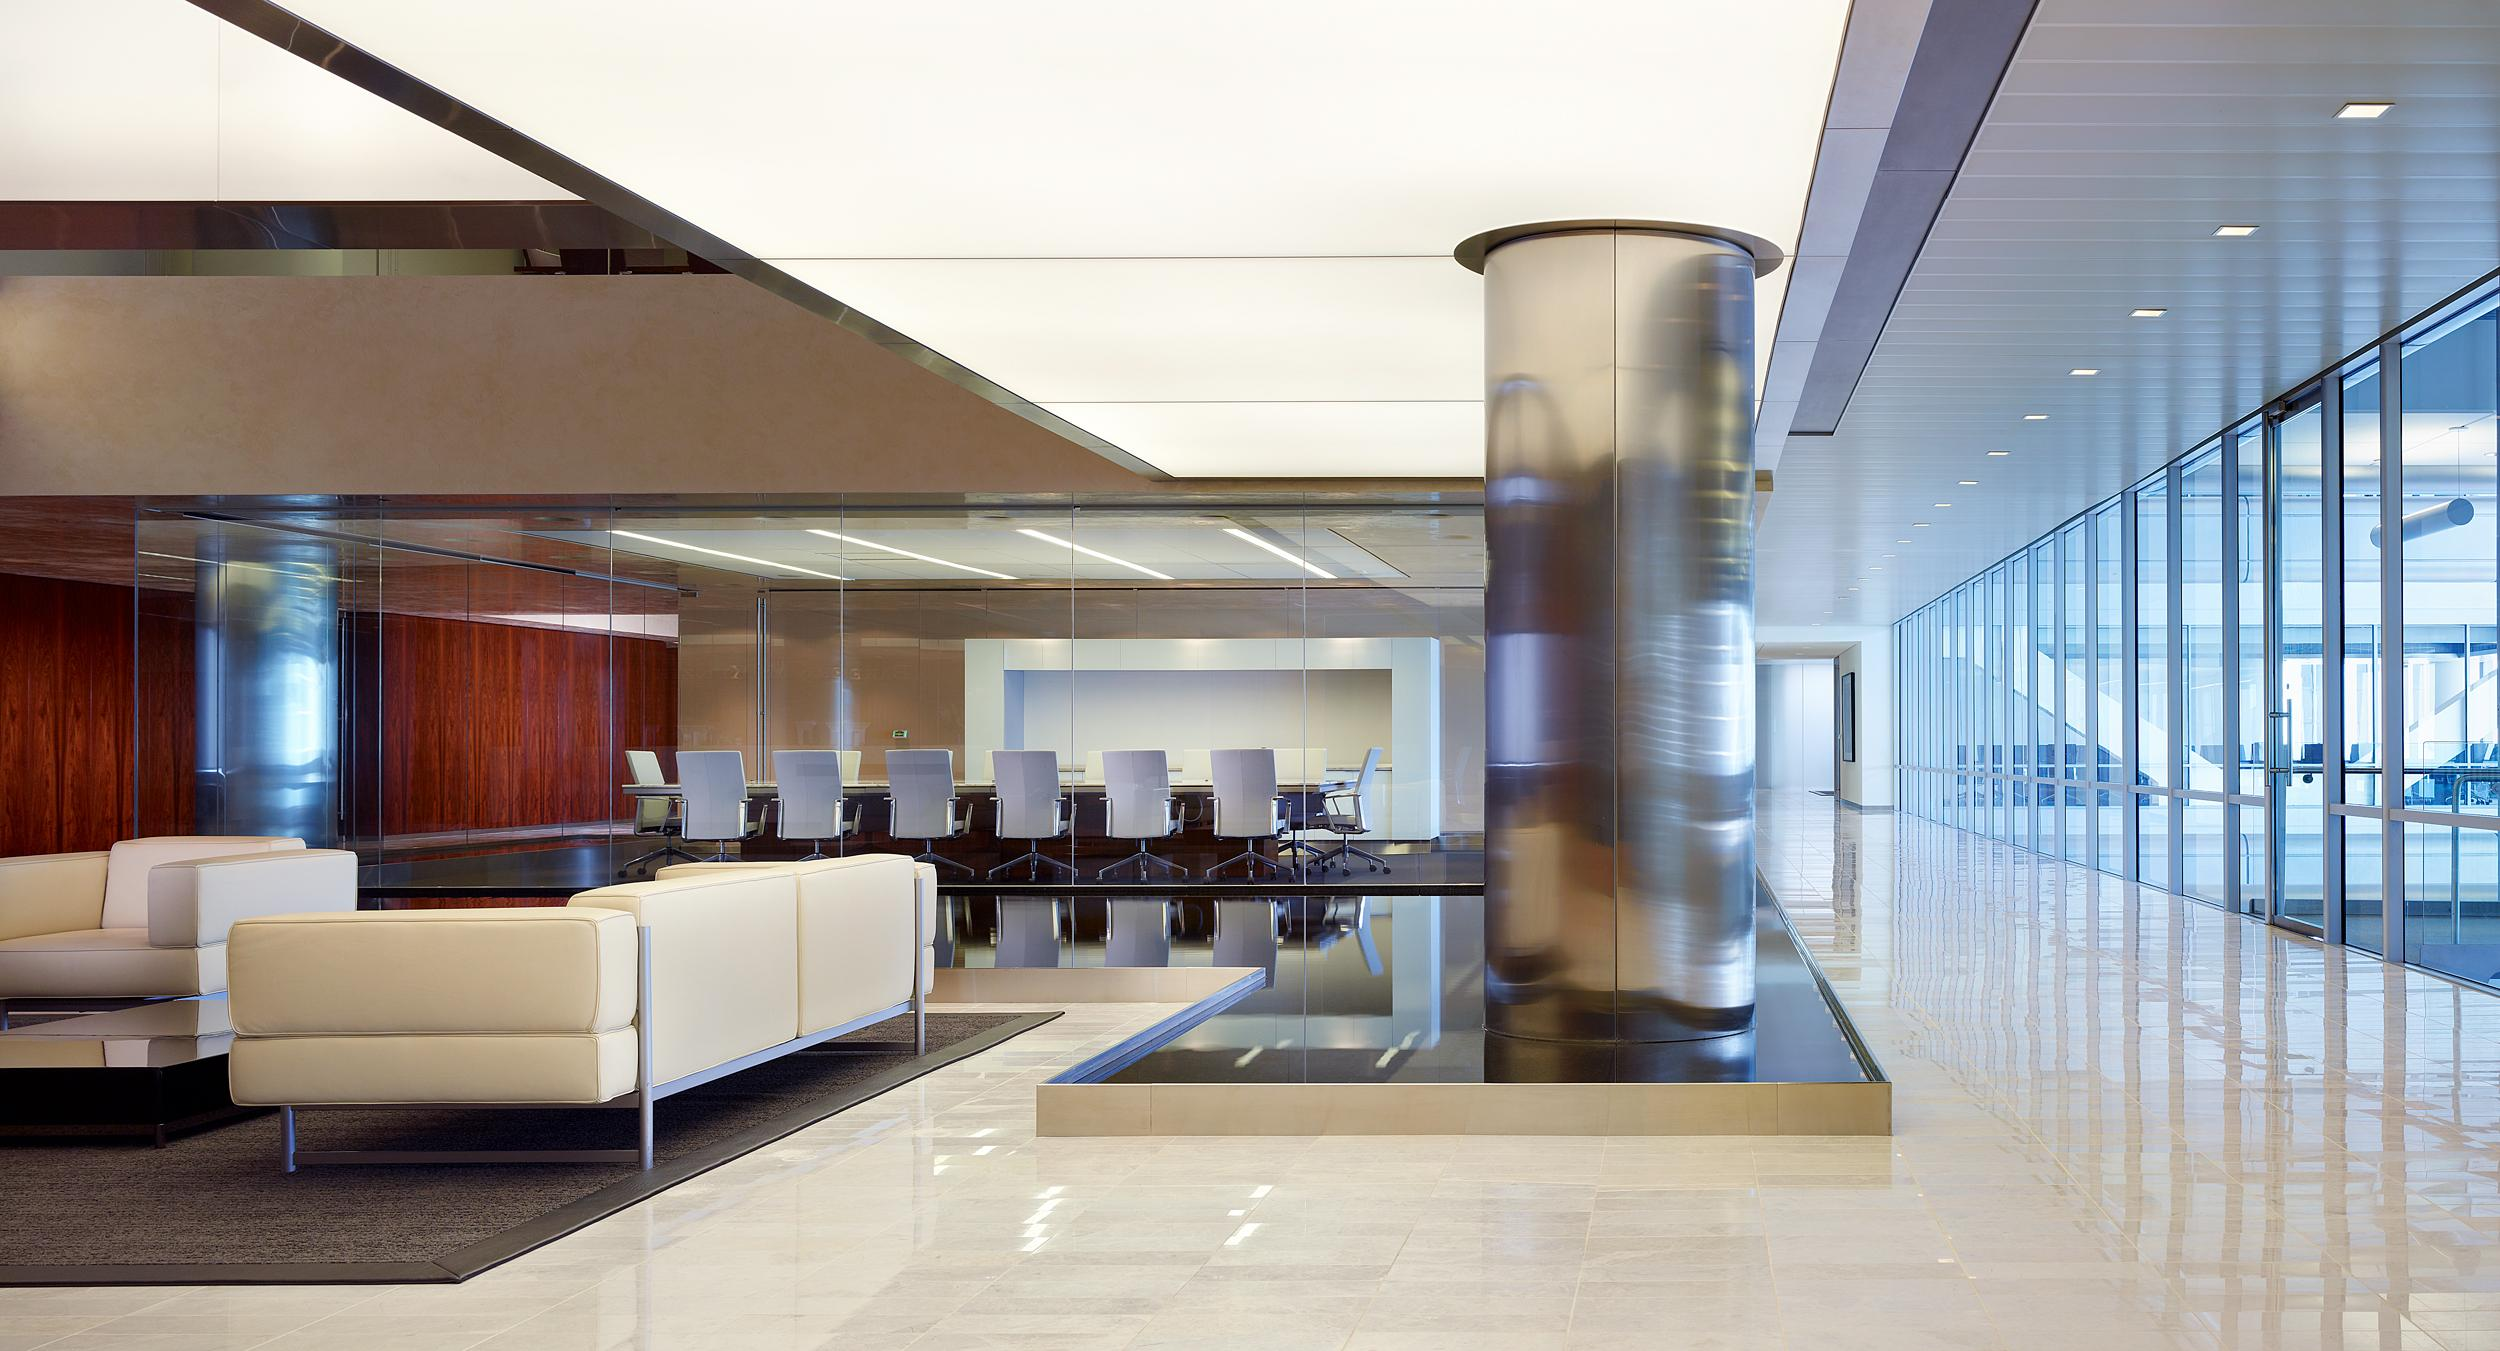 A shallow pool sits between Baker & McKenzie's lobby and a HALCON conference room.